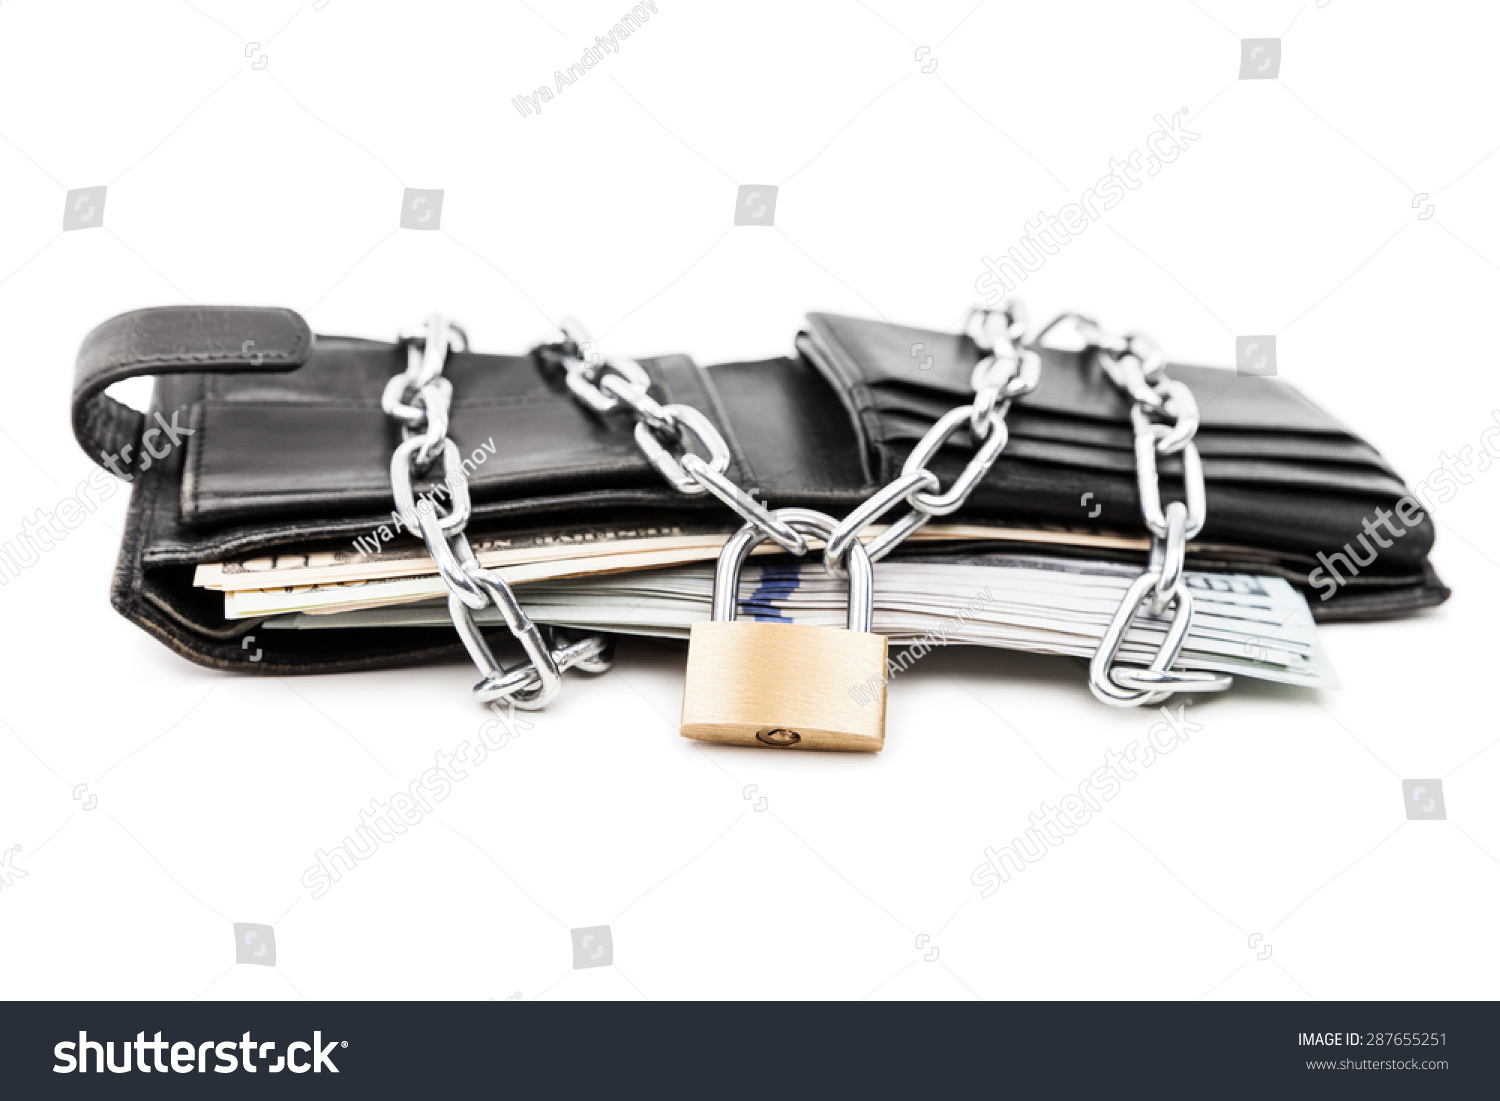 Business safety finance protection concept metal stock for Concept metal